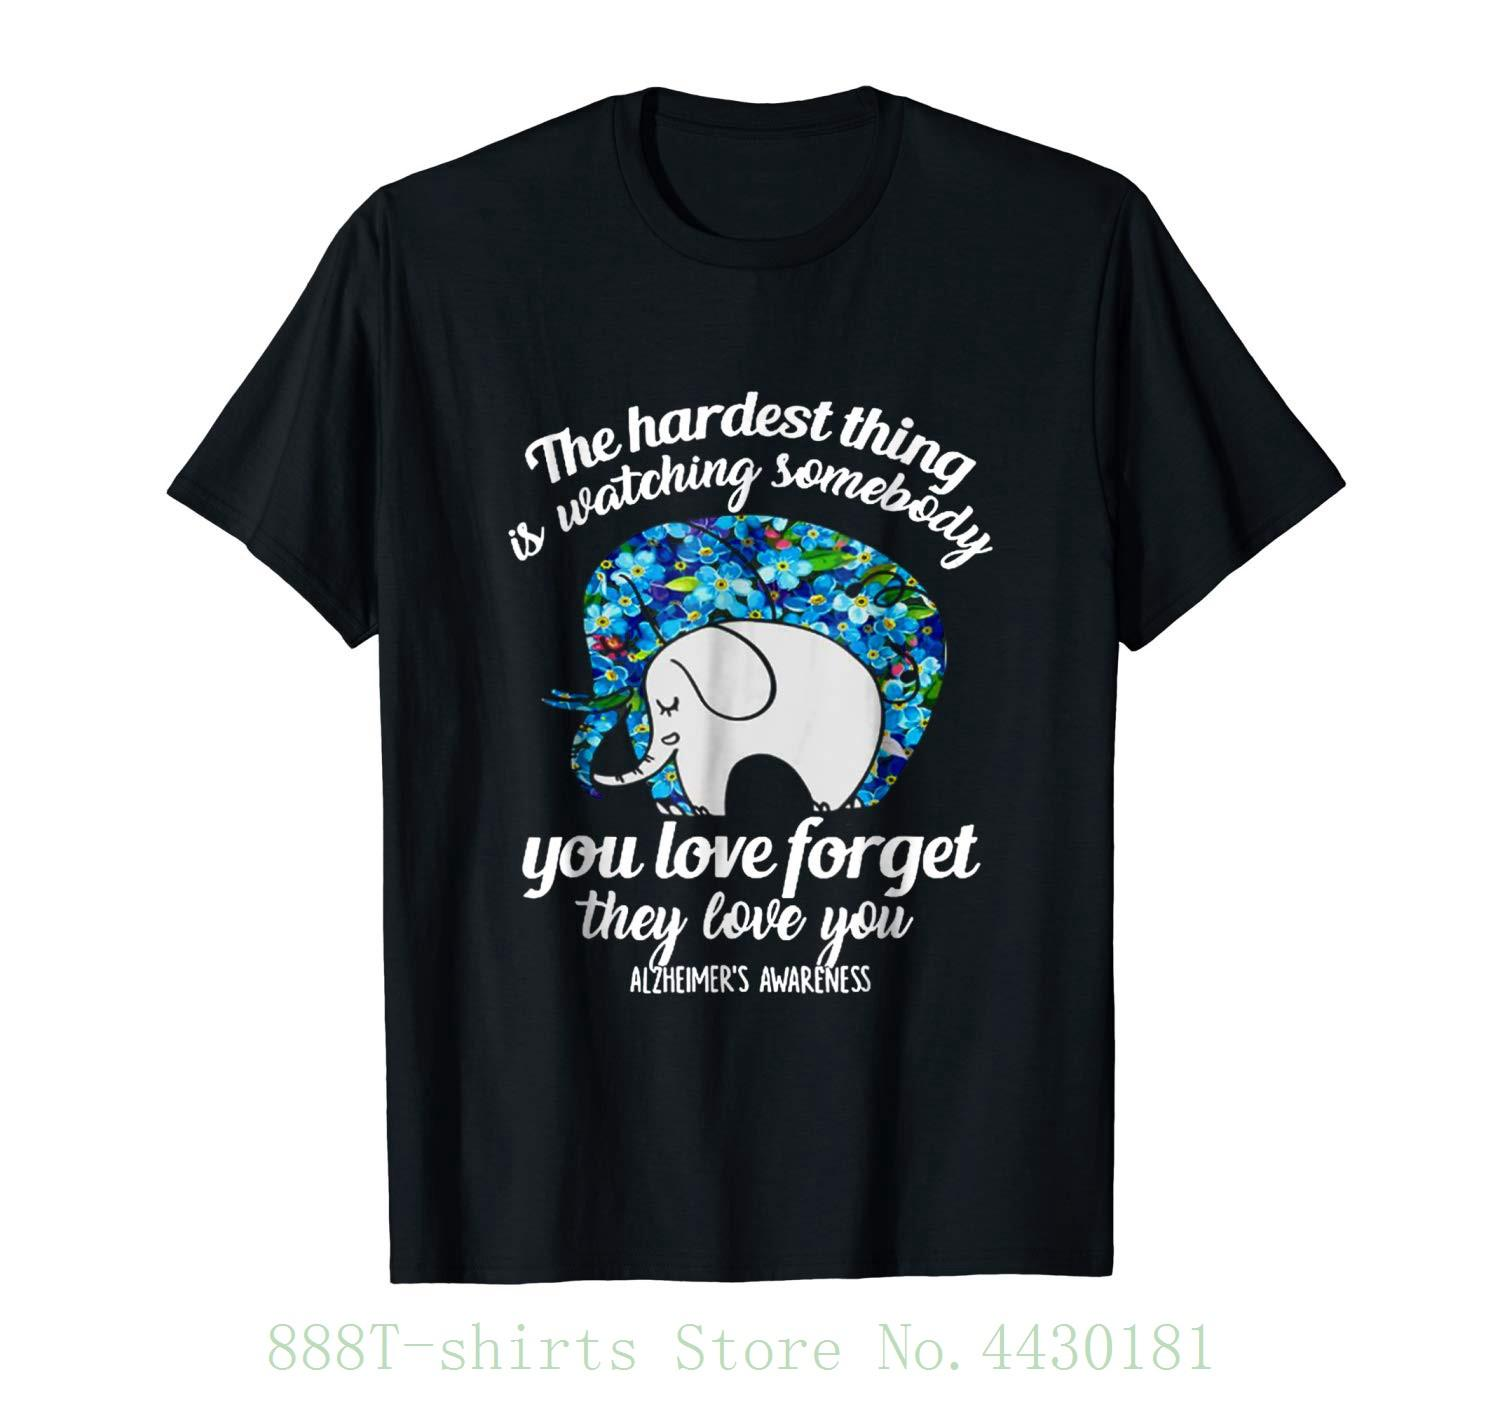 819870fee Women S Tee The Hardest Thing Somebody You Love T Shirt Elephant Shirt New  Fashion Women S Short Sleeve Buy Shirts Online Print Shirts From  Aaa888tshirts